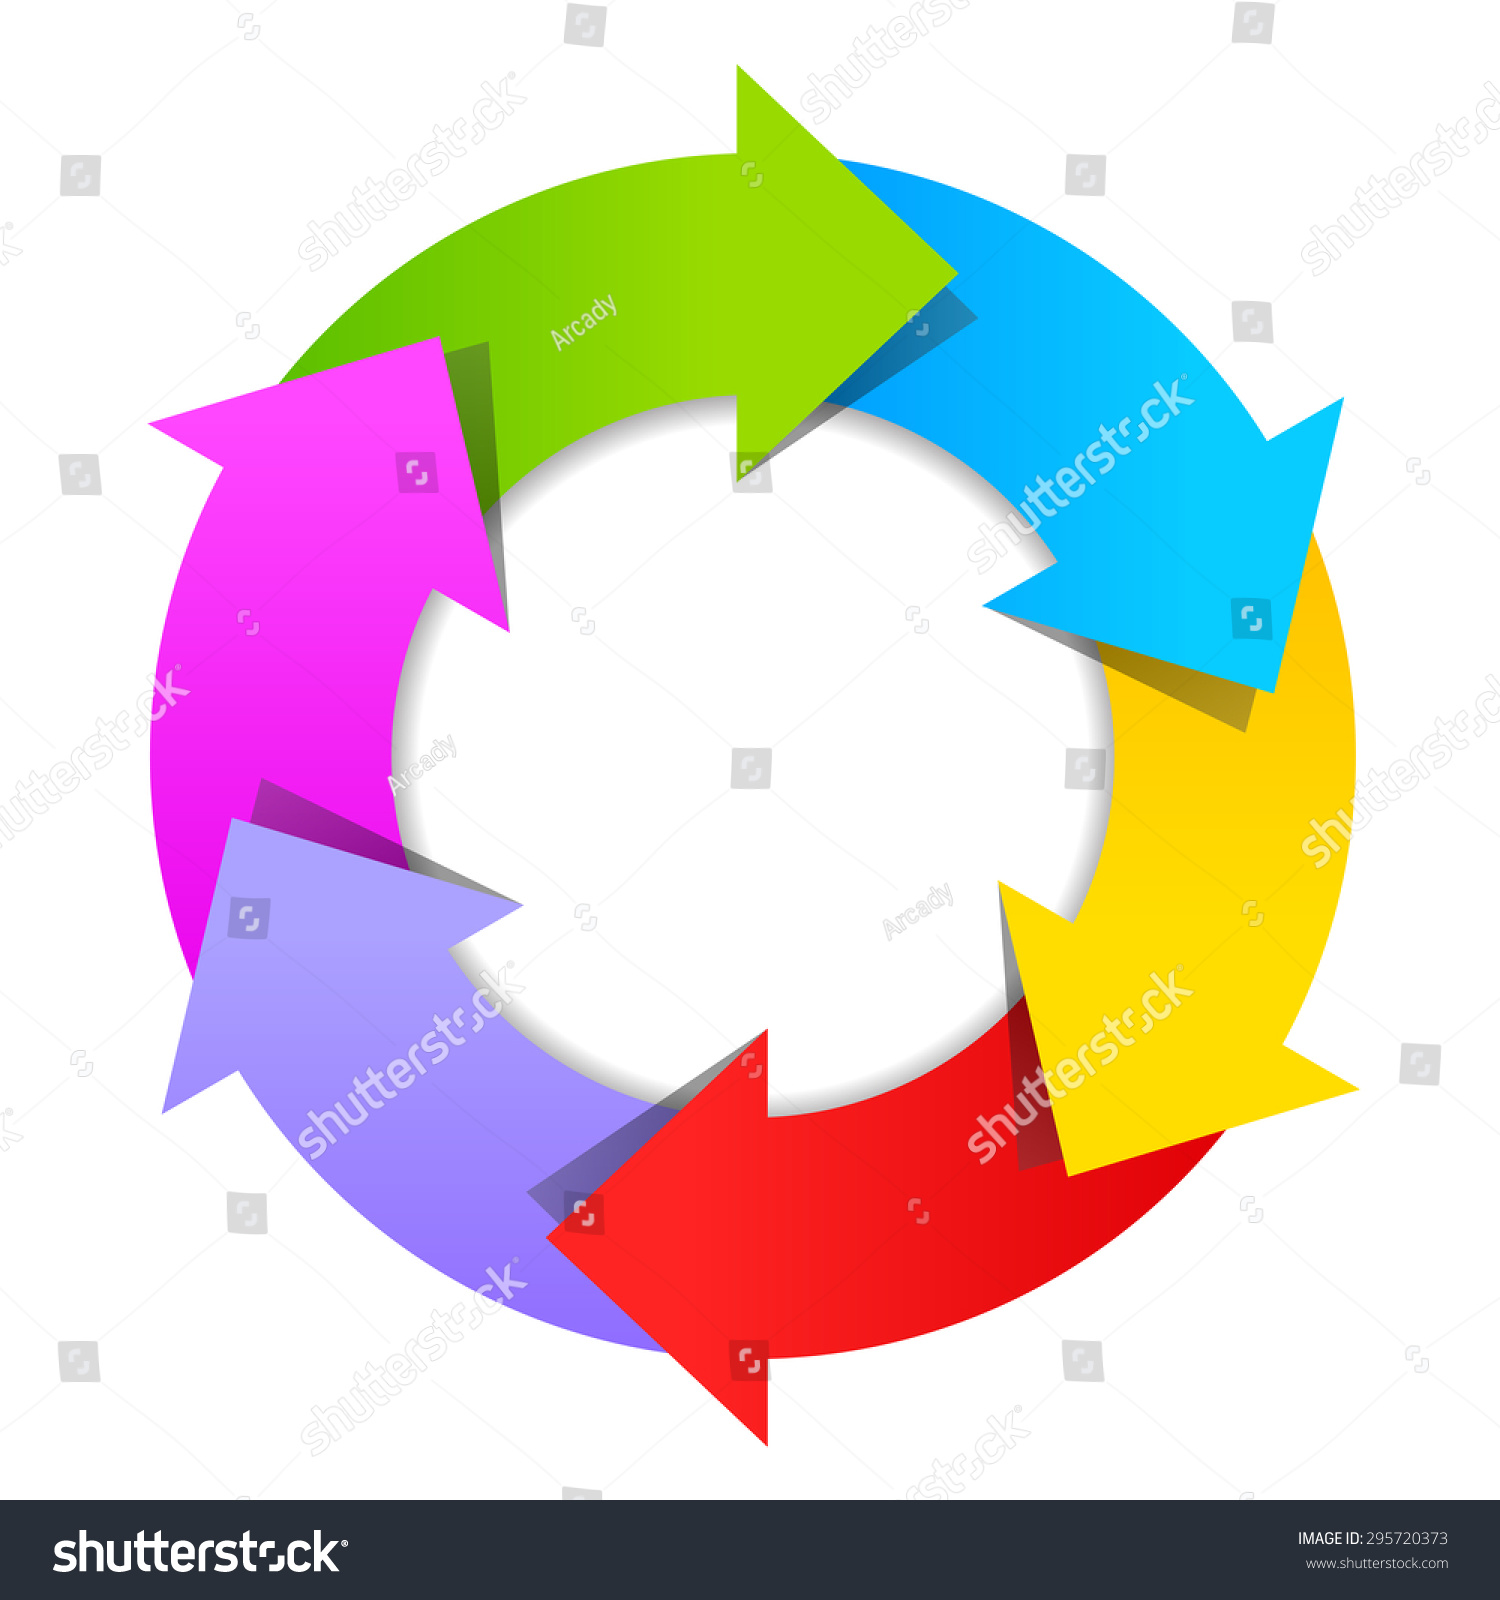 6 part arrow wheel diagram stock vector 2018 295720373 shutterstock 6 part arrow wheel diagram ccuart